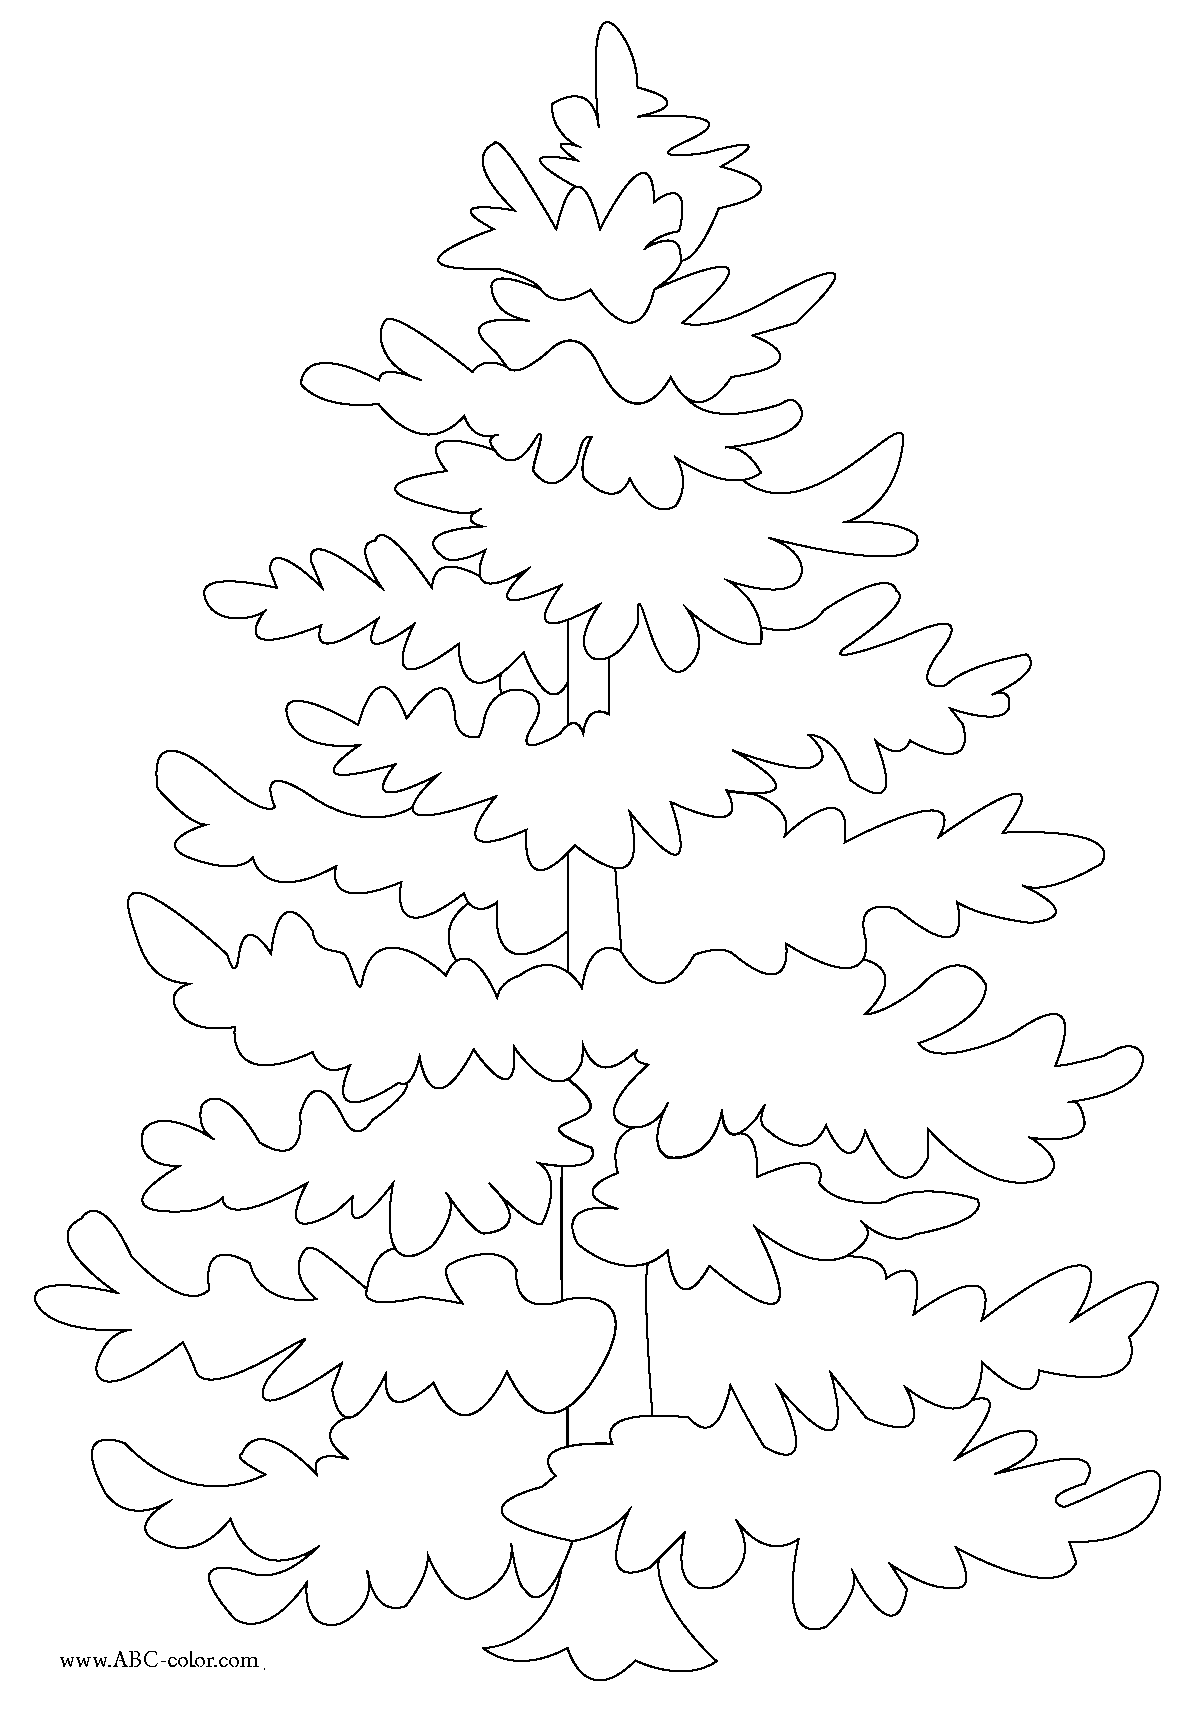 Evergreen Tree Coloring Page Tree Coloring Page Coloring Pages Christmas Drawing